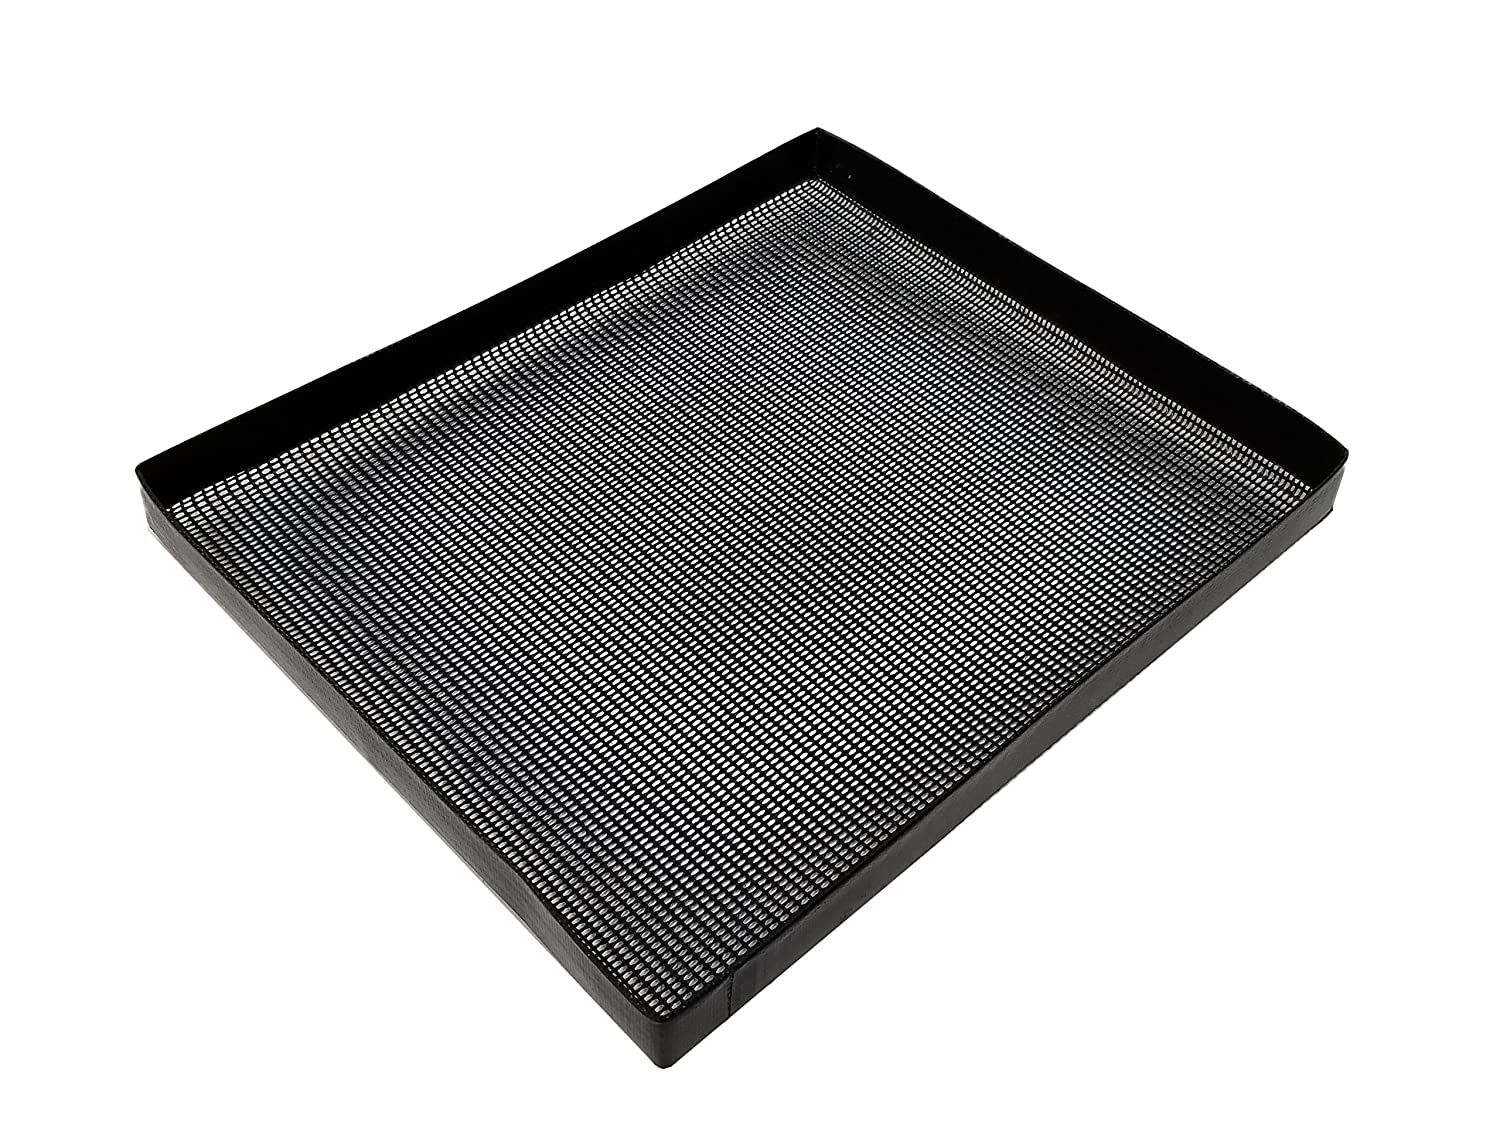 """10"""" x 12"""" PTFE Fine Mesh Oven basket for Turbo Chef, Merrychef, and Amana (Replaces TB10)"""